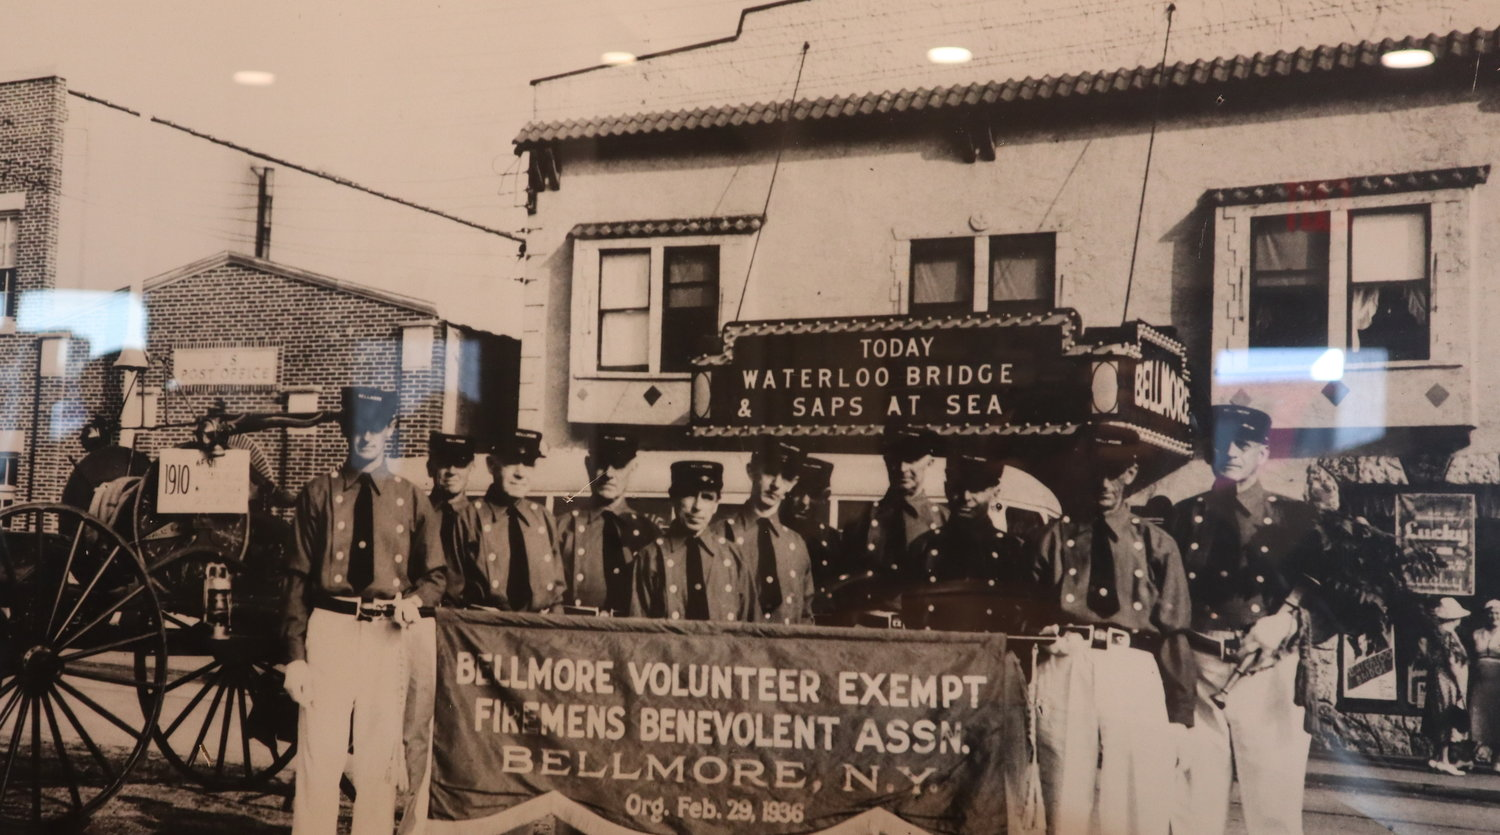 The Bellmore Firemens Benevolent Association in front of Bellmore Movies in the late 1930s.